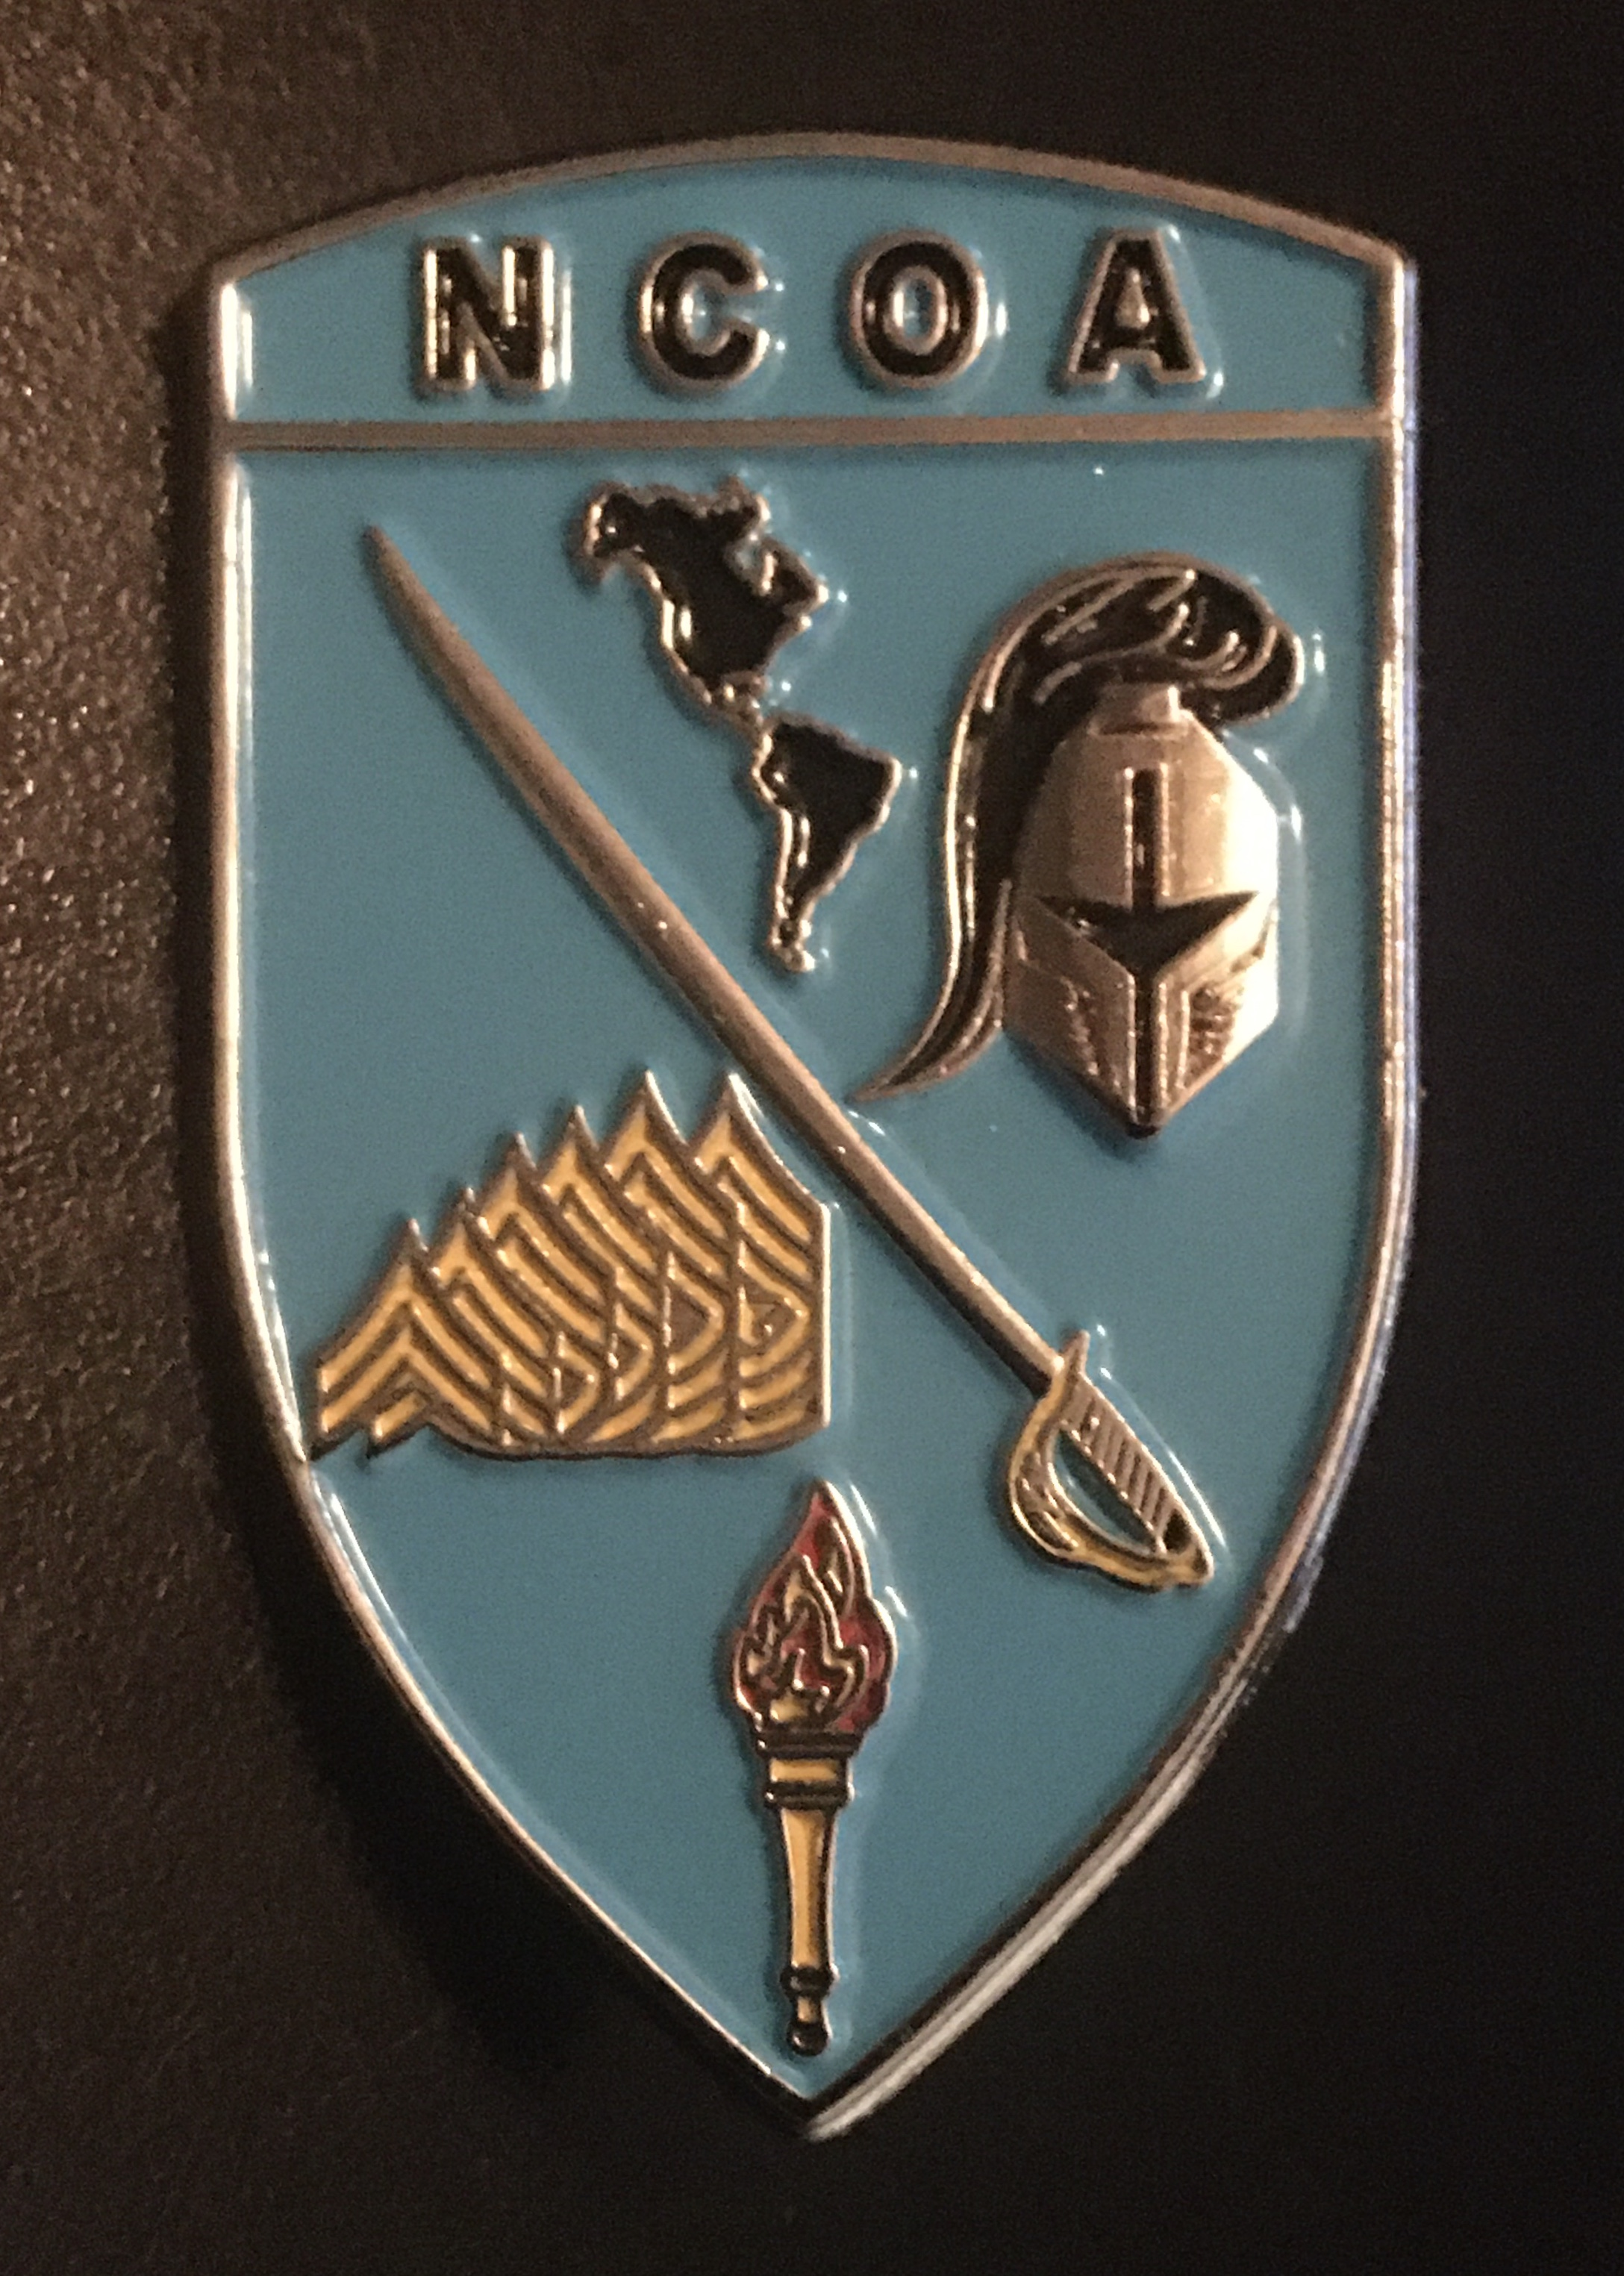 WHINSEC NCOA Badge